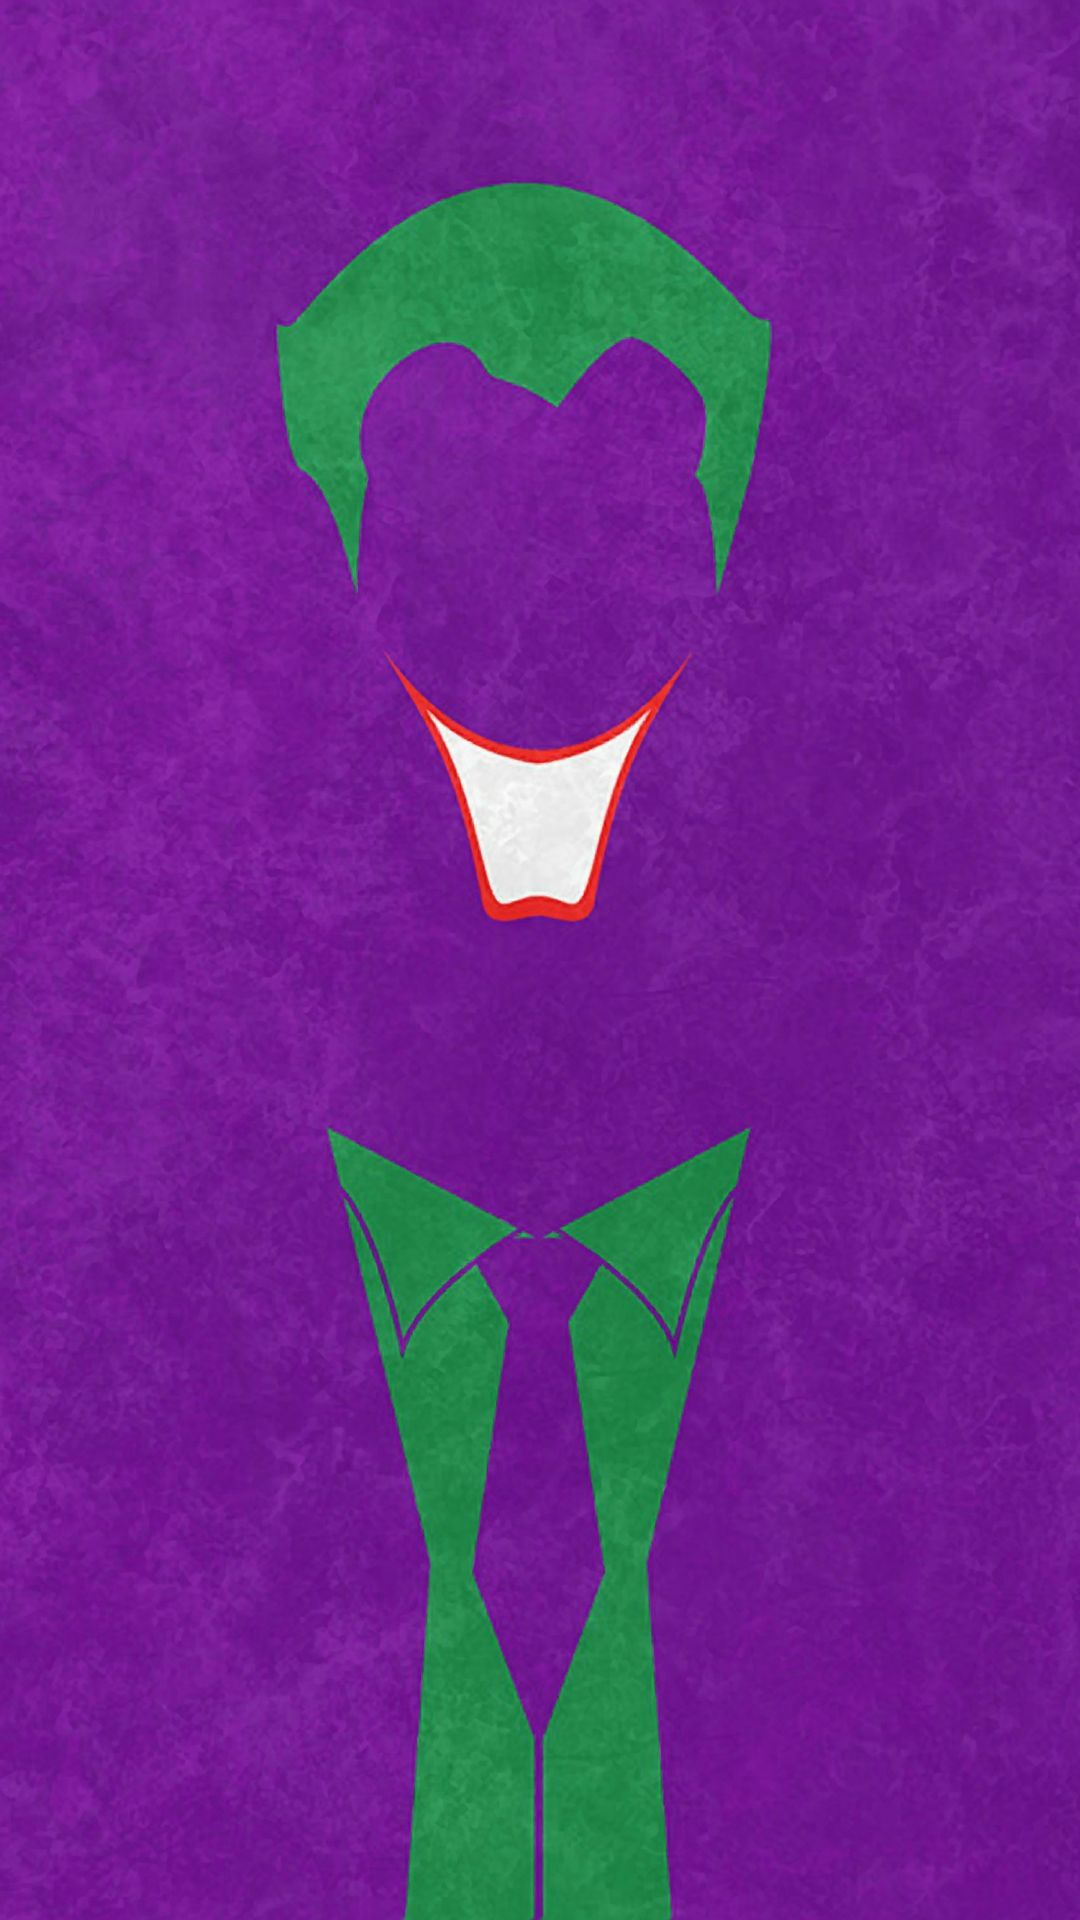 LKtycbb 1080x1920 JokerBatmanHalloween PartiesIphone WallpapersMinimalismSuperheroSuperheroesJokersIphone Backgrounds